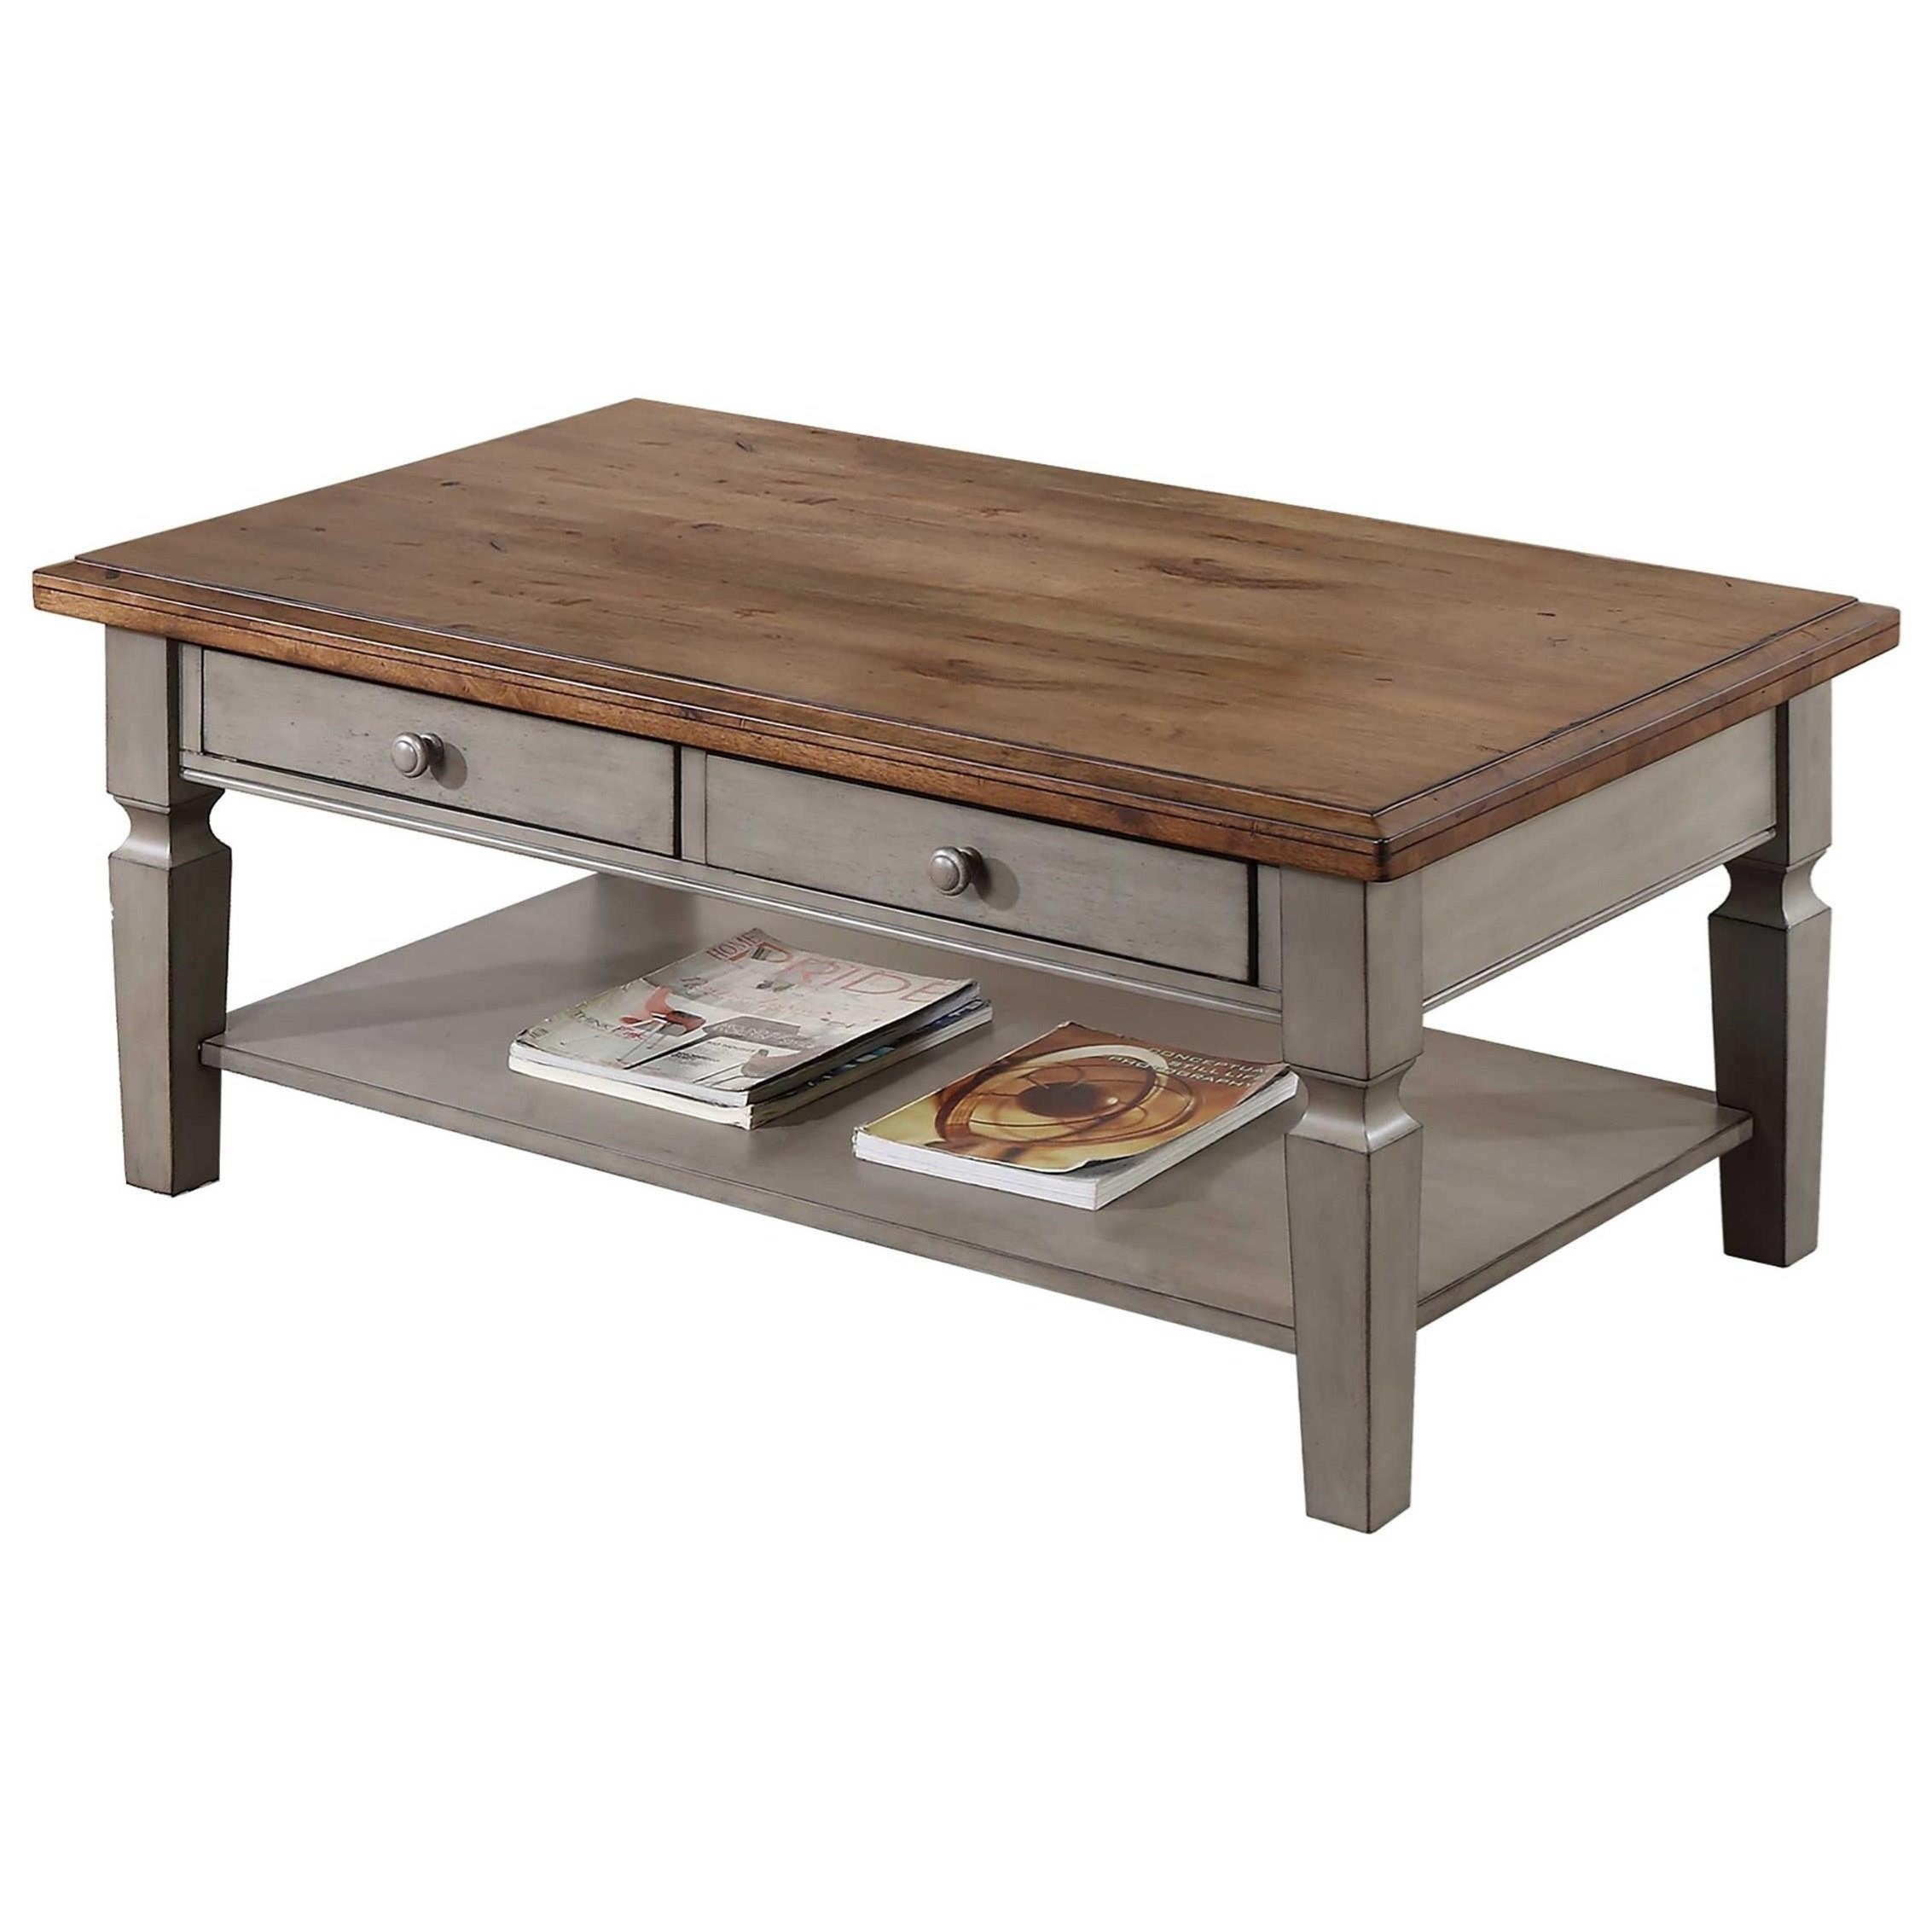 "Barnwell 48"" Coffee Table by Winners Only at Gill Brothers Furniture"